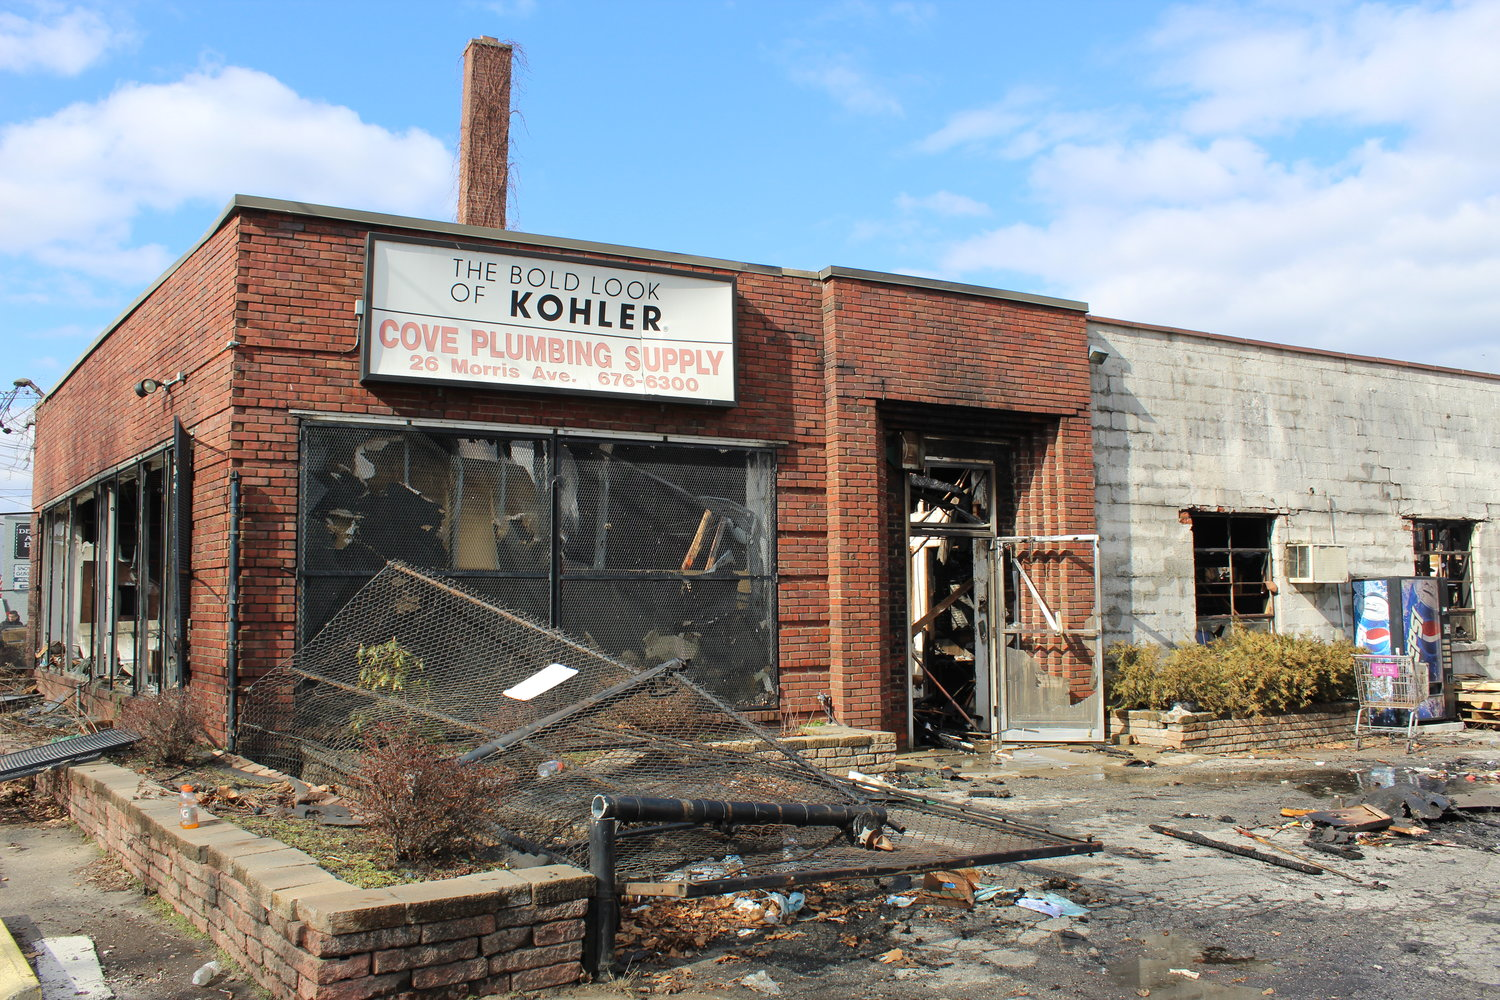 The East Meadow Fire Department joined with more than 30 other fire departments on the morning of March 12 to help fight a fire at Cove Plumbing Supply Co., in Glen Cove.